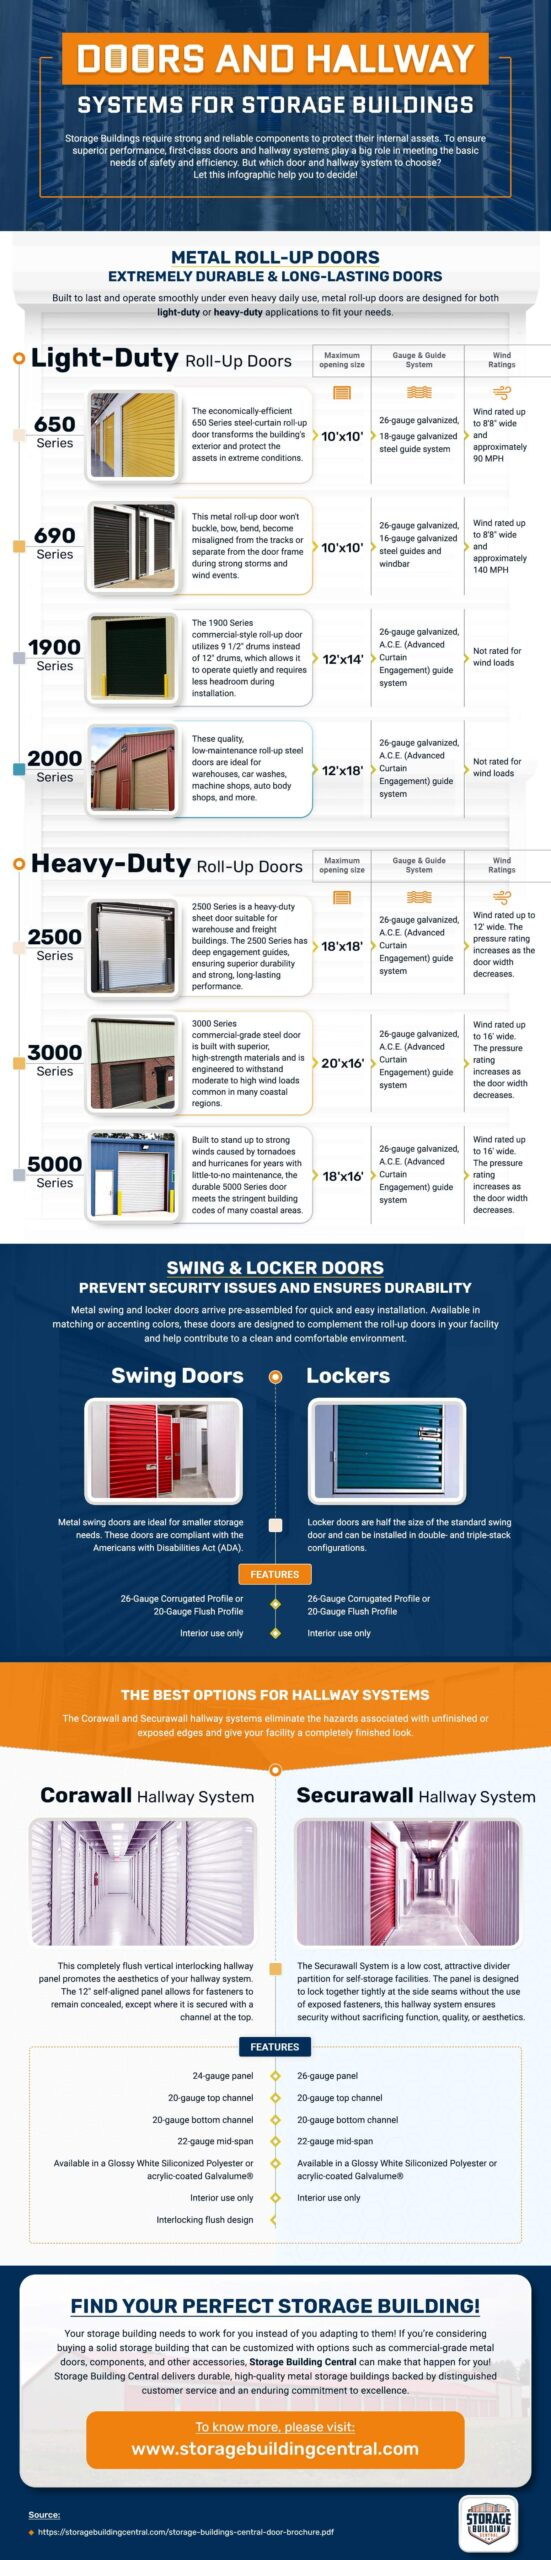 , Doors and Hallway Systems for Storage Buildings